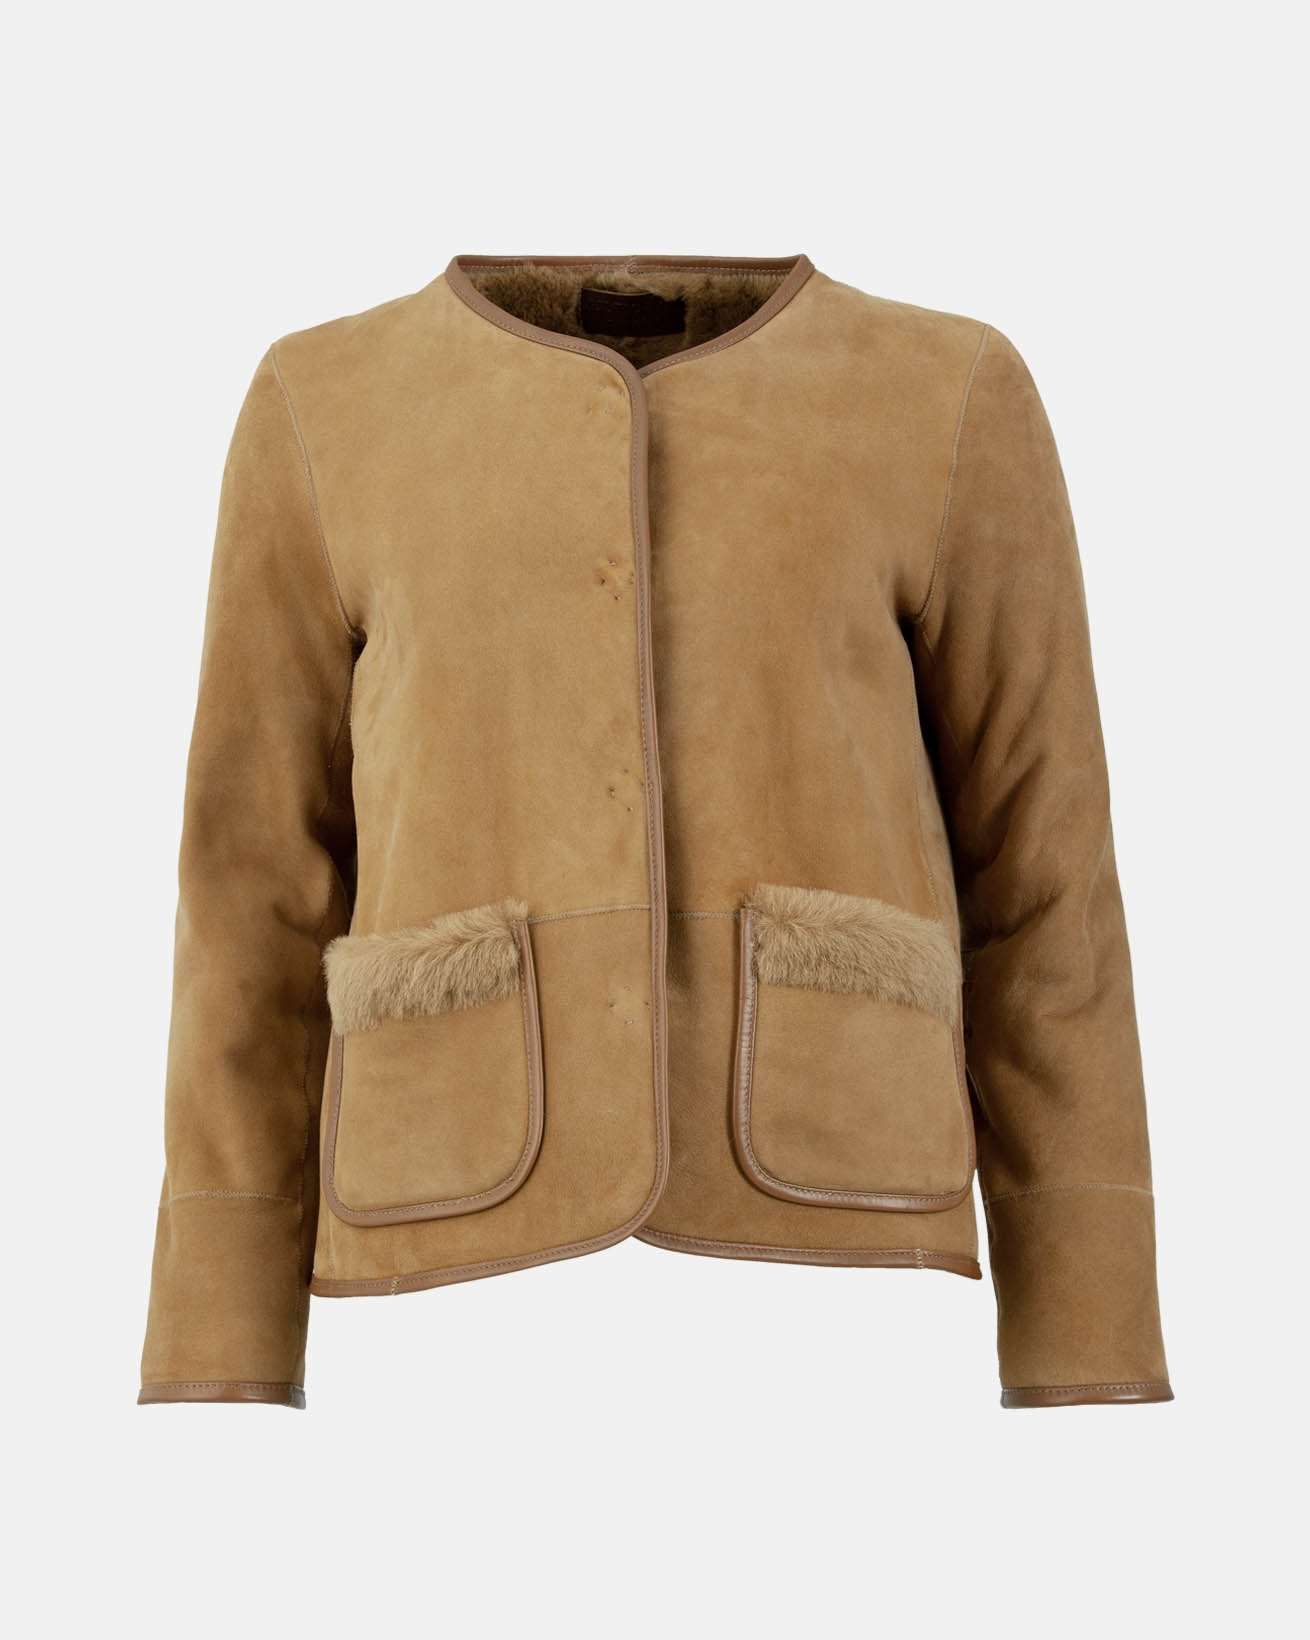 7625_dainty-bound-edge-sheepskin-jacket_honey_front_rev.jpg